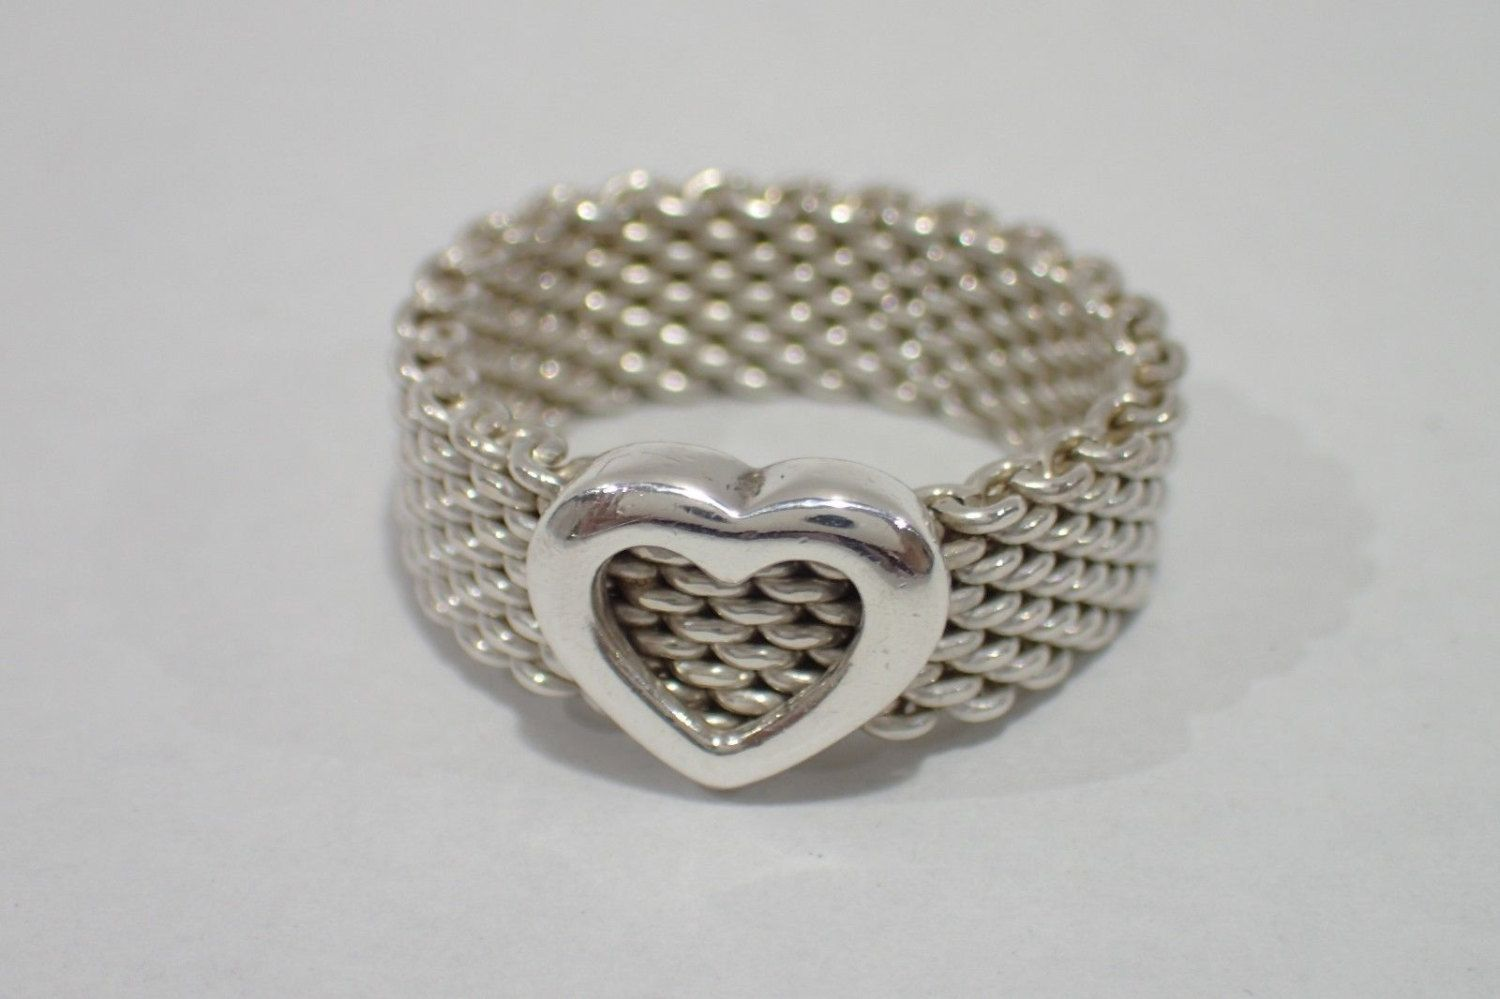 Stunning Sterling Silver Tiffany & Co. Mesh Heart Ring - Size 5.5 - Like New! by Tiffanytreasureshop on Etsy